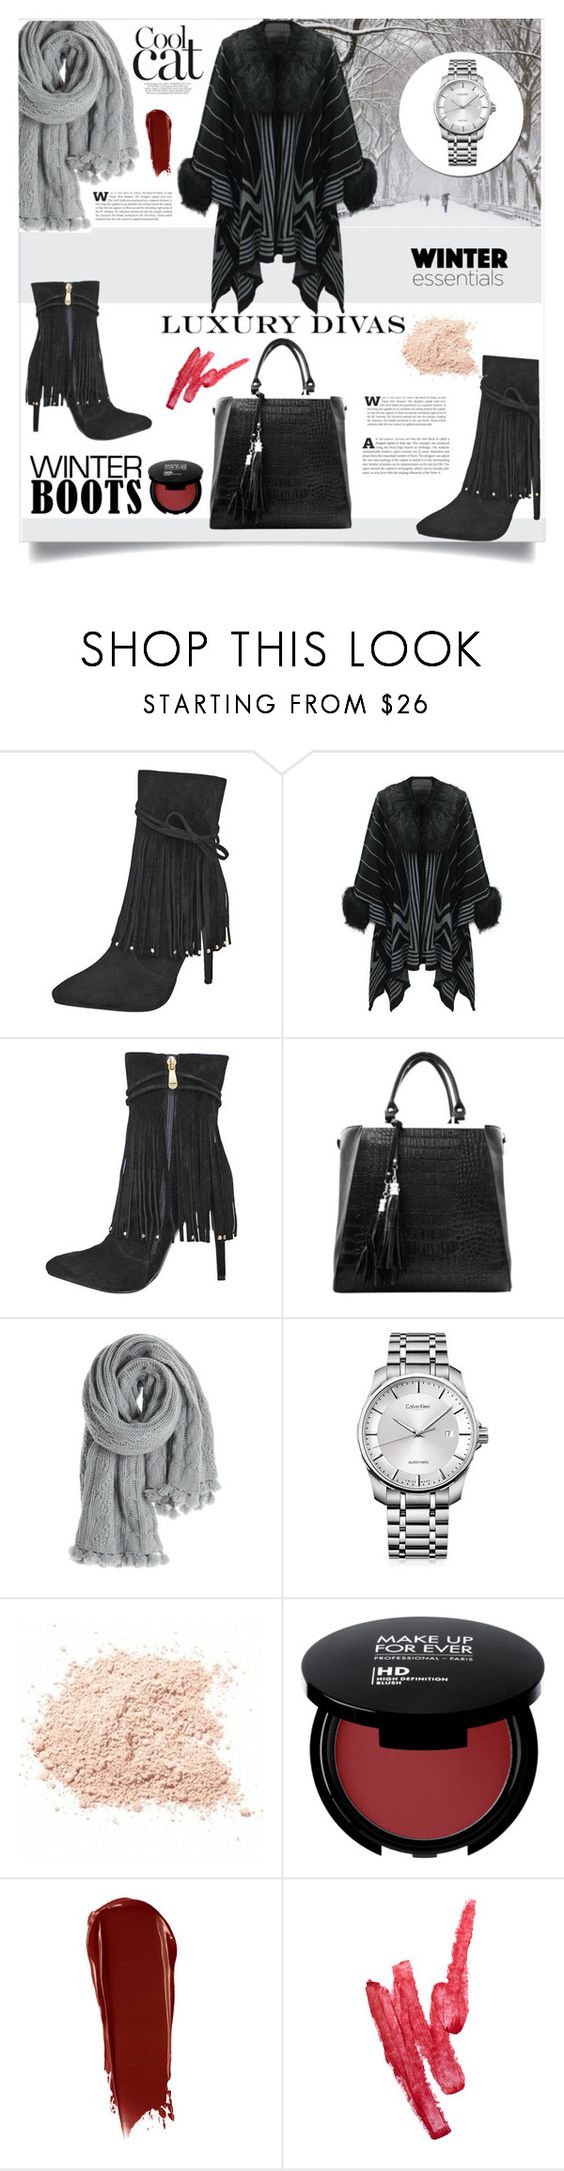 """Luxury Divas"" by smasy ❤ liked on Polyvore featuring Calypso St. Barth, Calvin Klein, NARS Cosmetics, Ilia and LUXURYDIVAS"